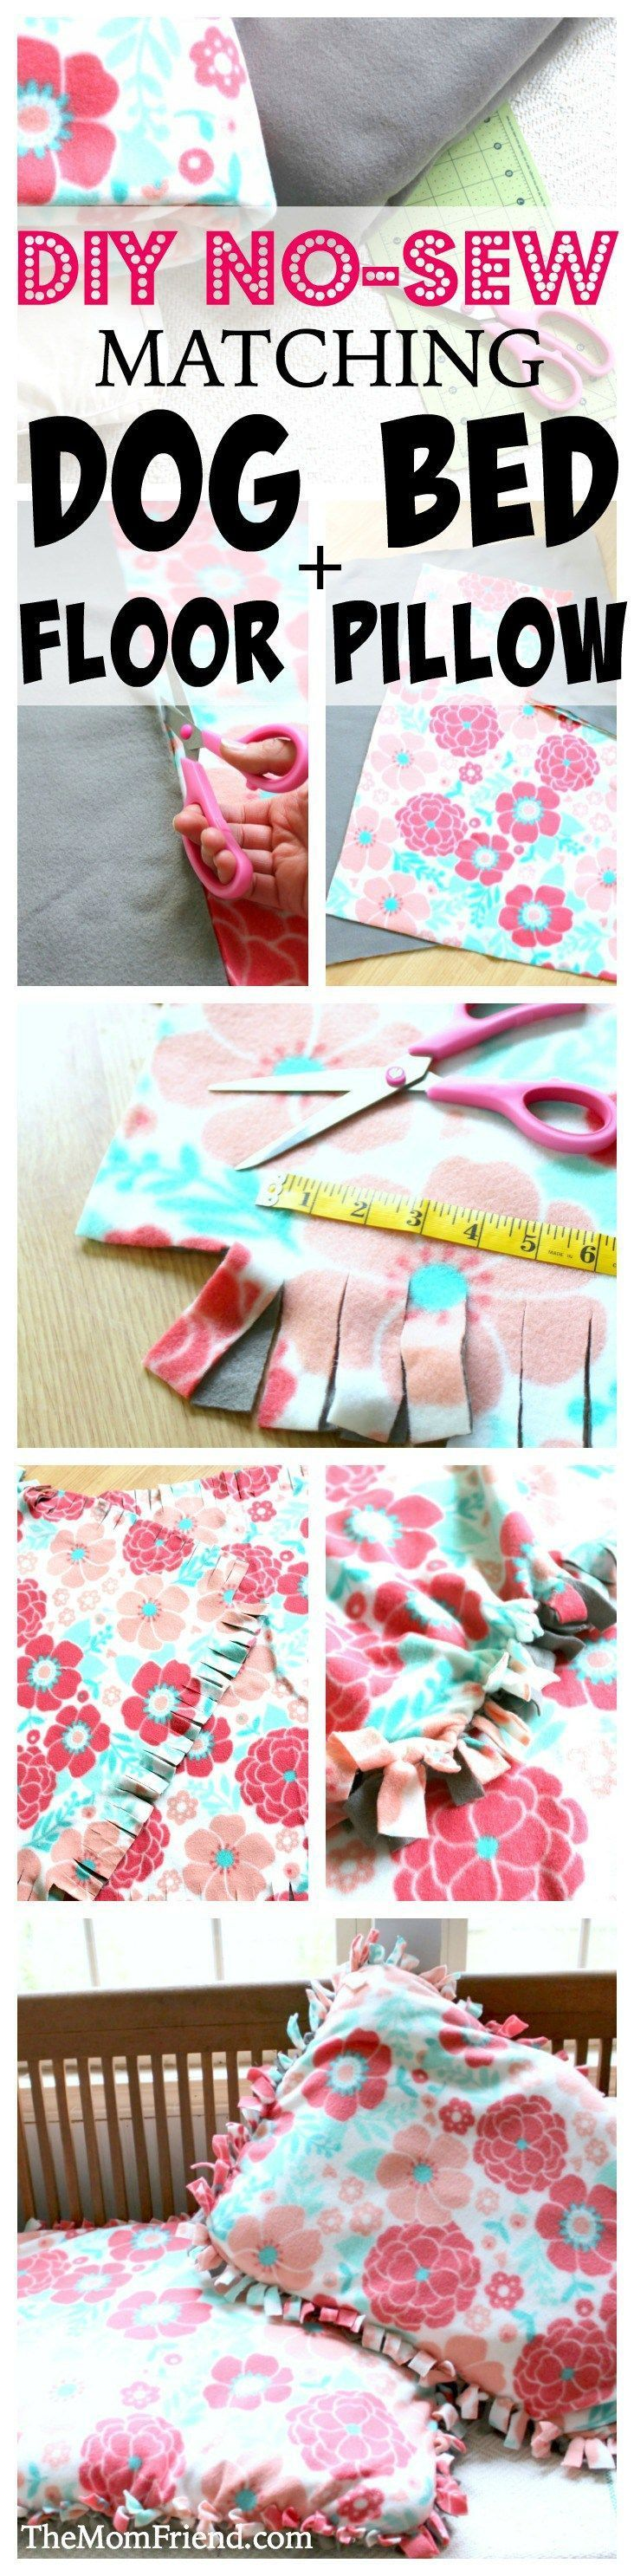 Easy DIY no-sew dog bed and matching floor pillow, perfect for babies, toddlers